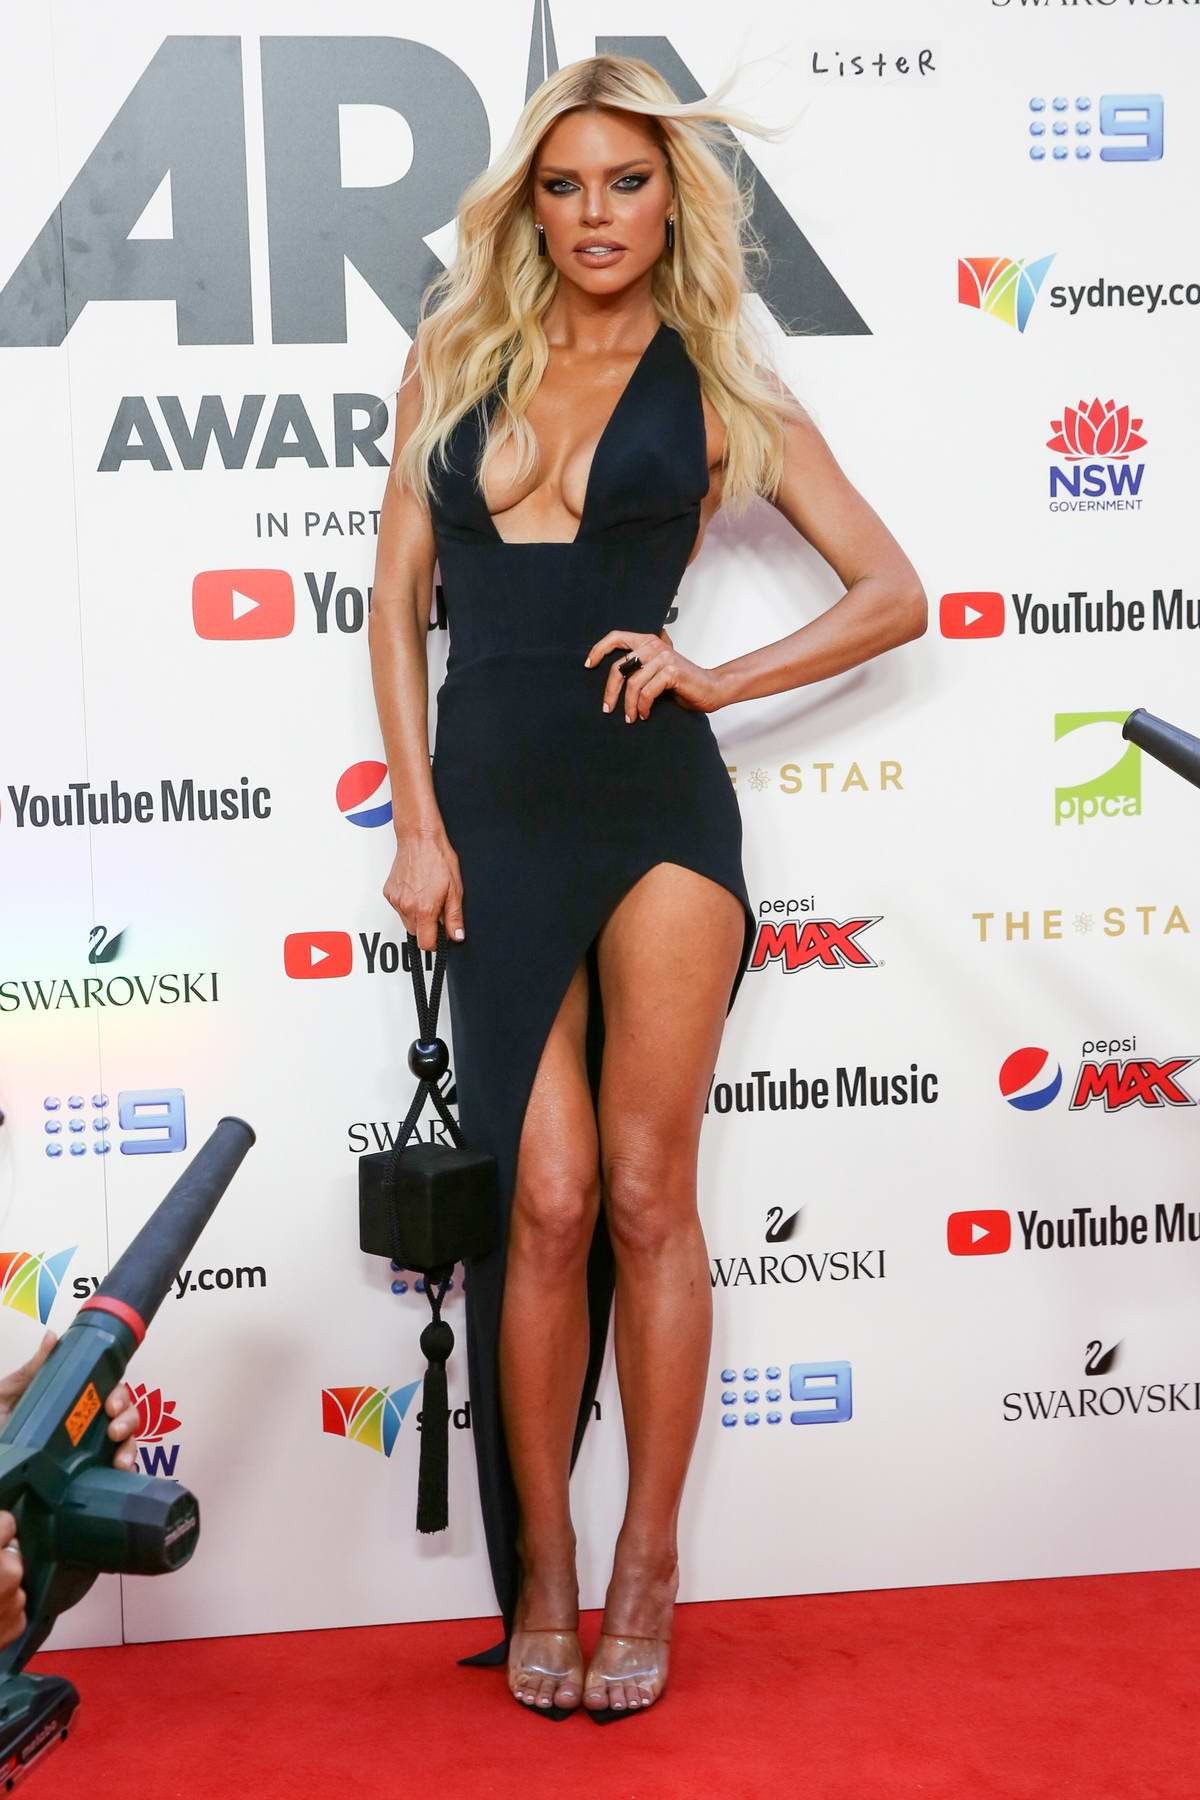 Sophie Monk attends the 33rd Annual Aria Awards at the Star in Sydney, Australia